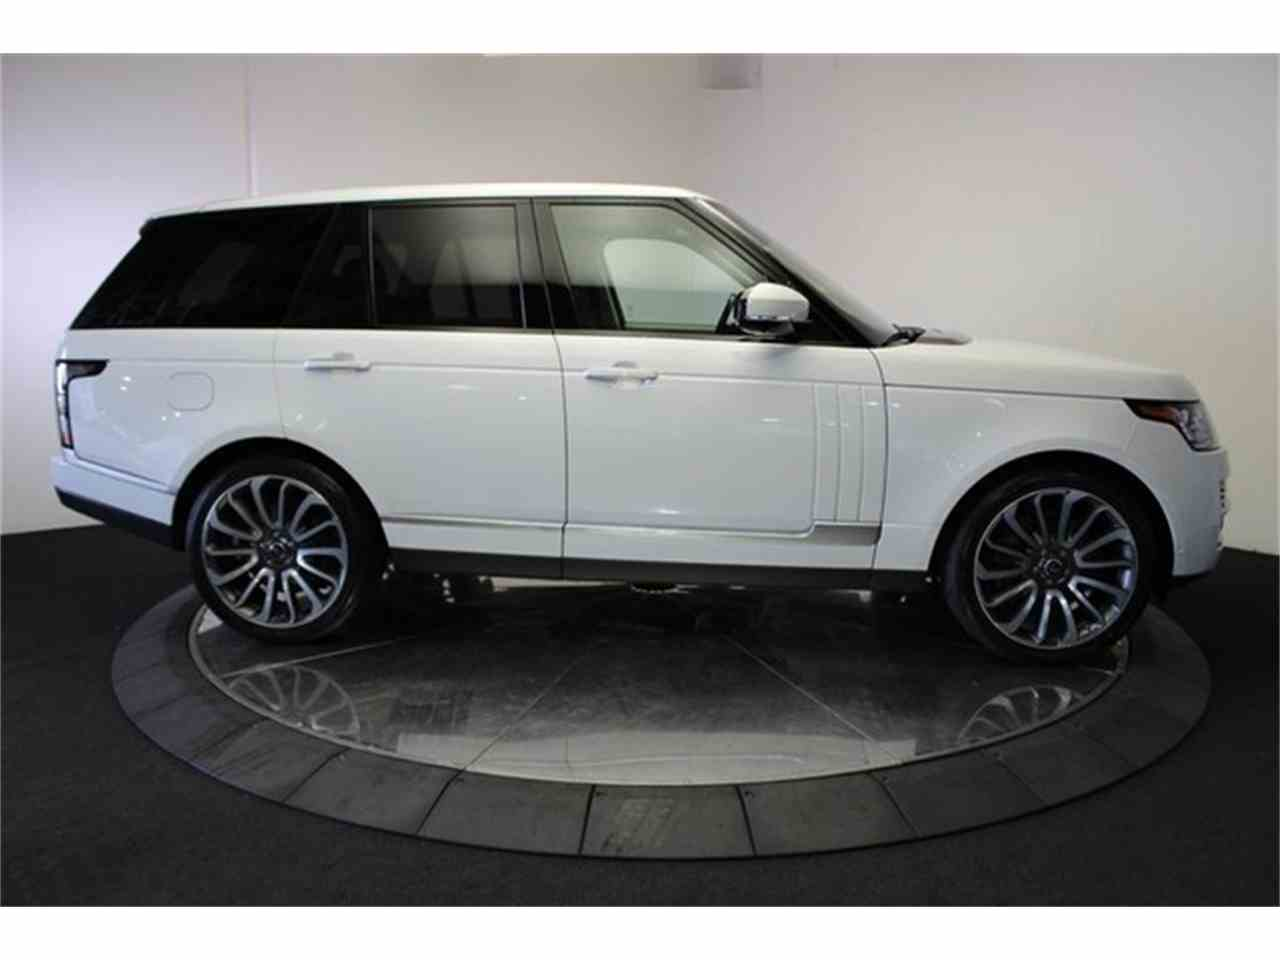 Large Picture of 2013 Land Rover Range Rover - $73,888.00 Offered by DC Motors - KHXU